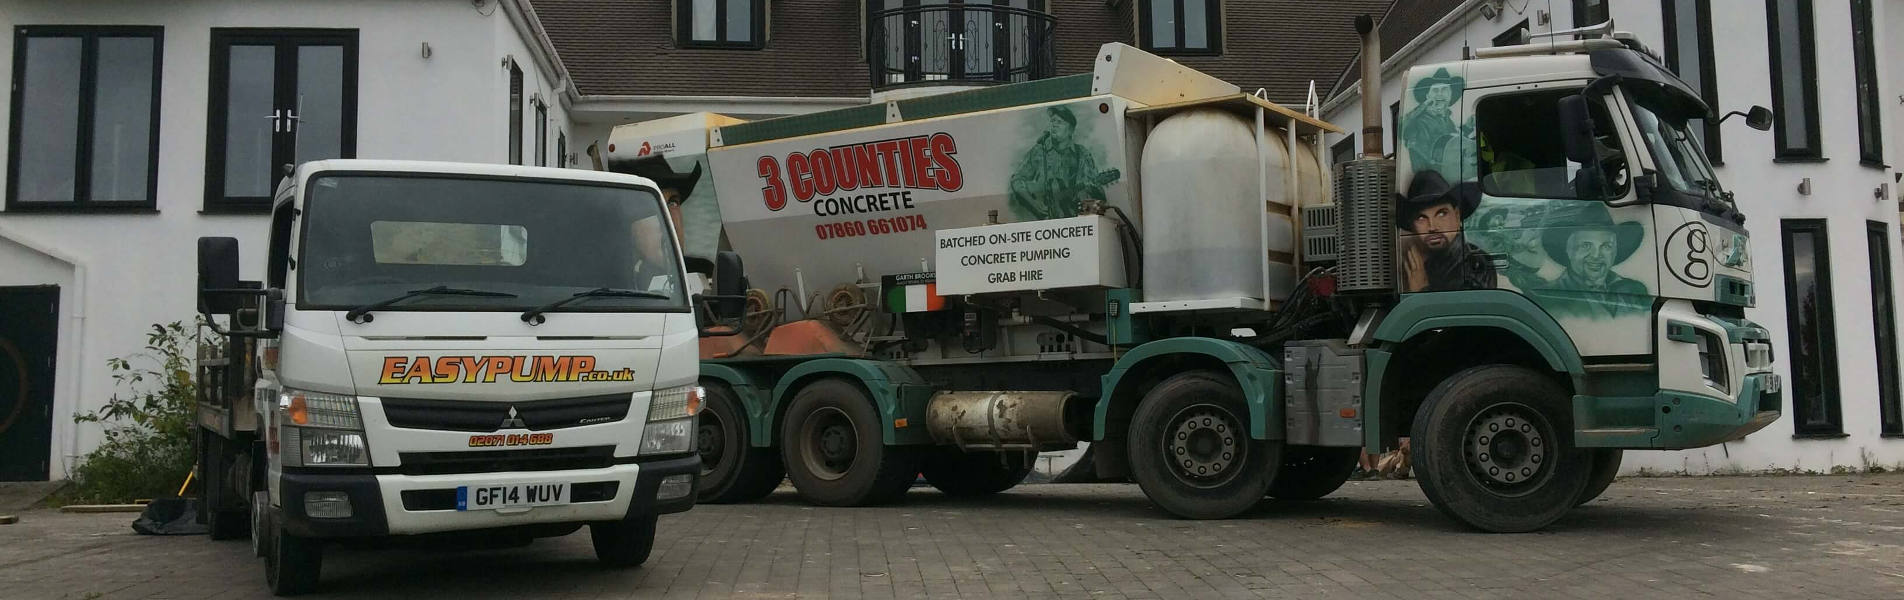 ready mix concrete suppliers - 3cc